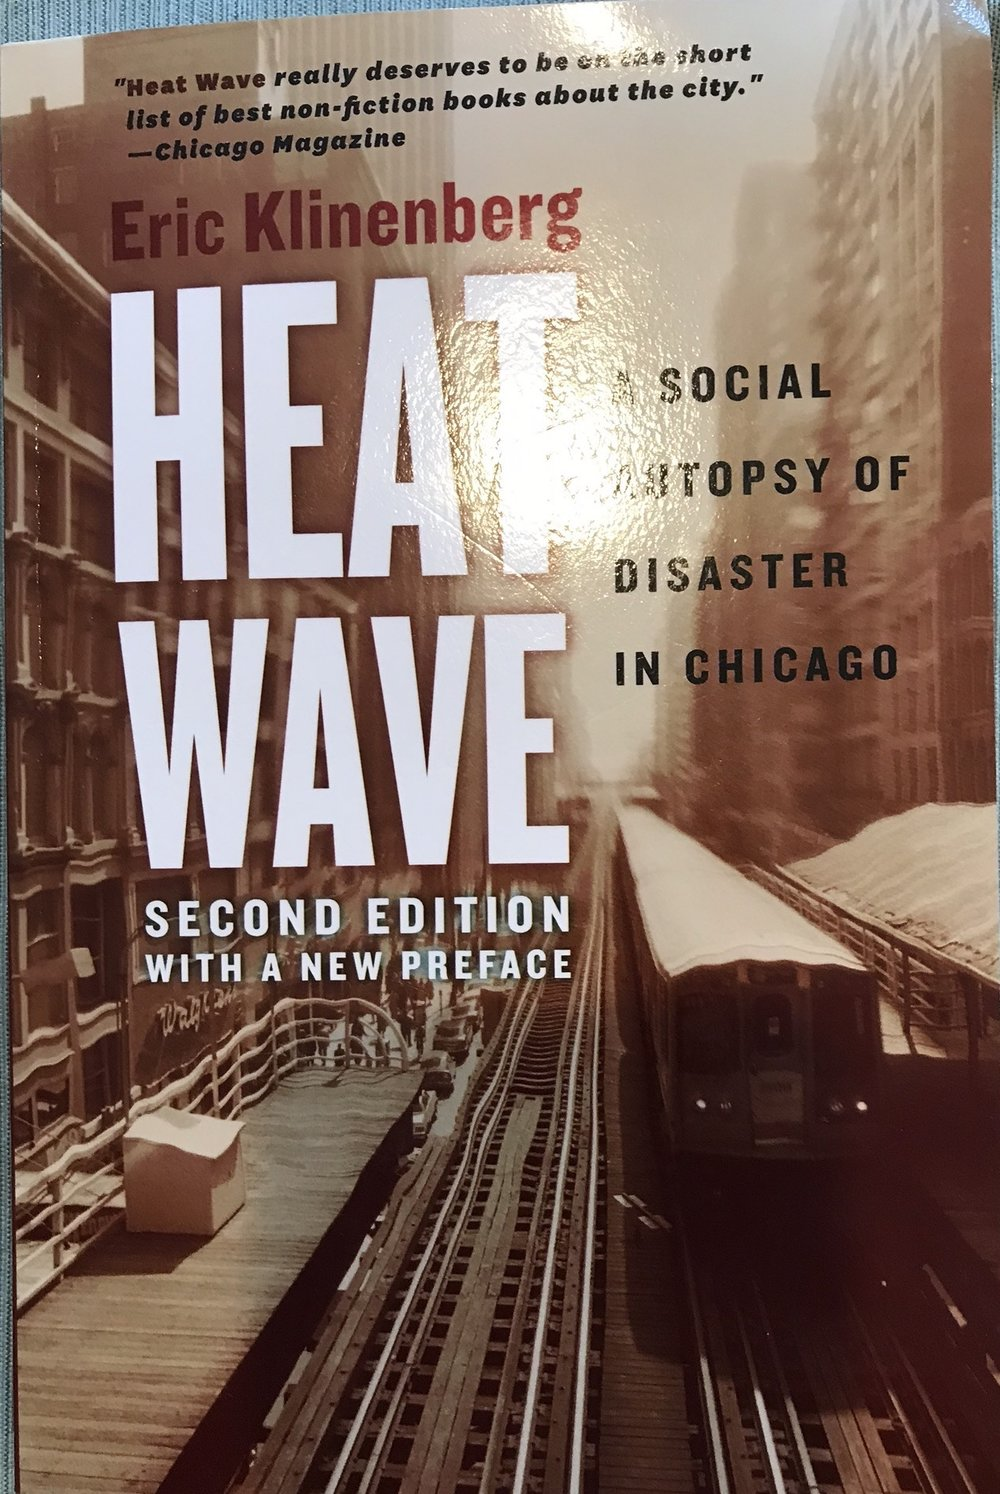 Check out this very interesting book: https://www.amazon.com/Heat-Wave-Autopsy-Disaster-Chicago/dp/022627618X/ref=sr_1_3?s=books&ie=UTF8&qid=1539710977&sr=1-3&keywords=eric+klinenberg.